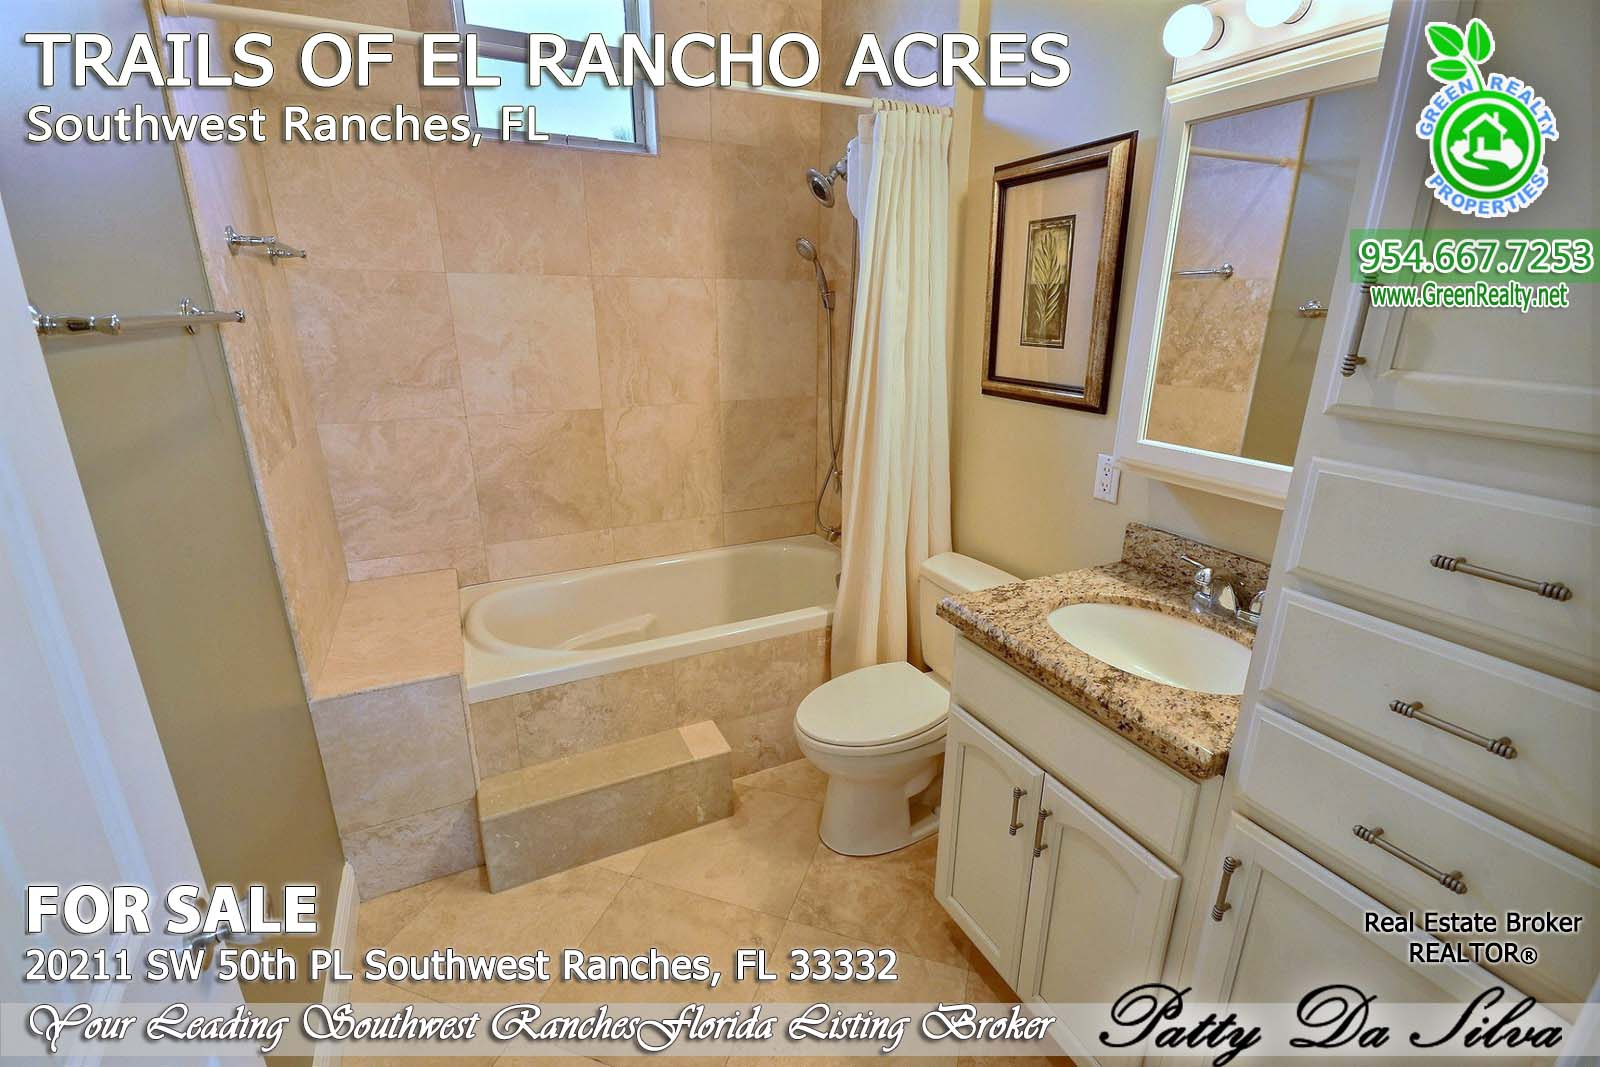 20211 SW 50th PL, Southwest Ranches, FL 33332 (69)